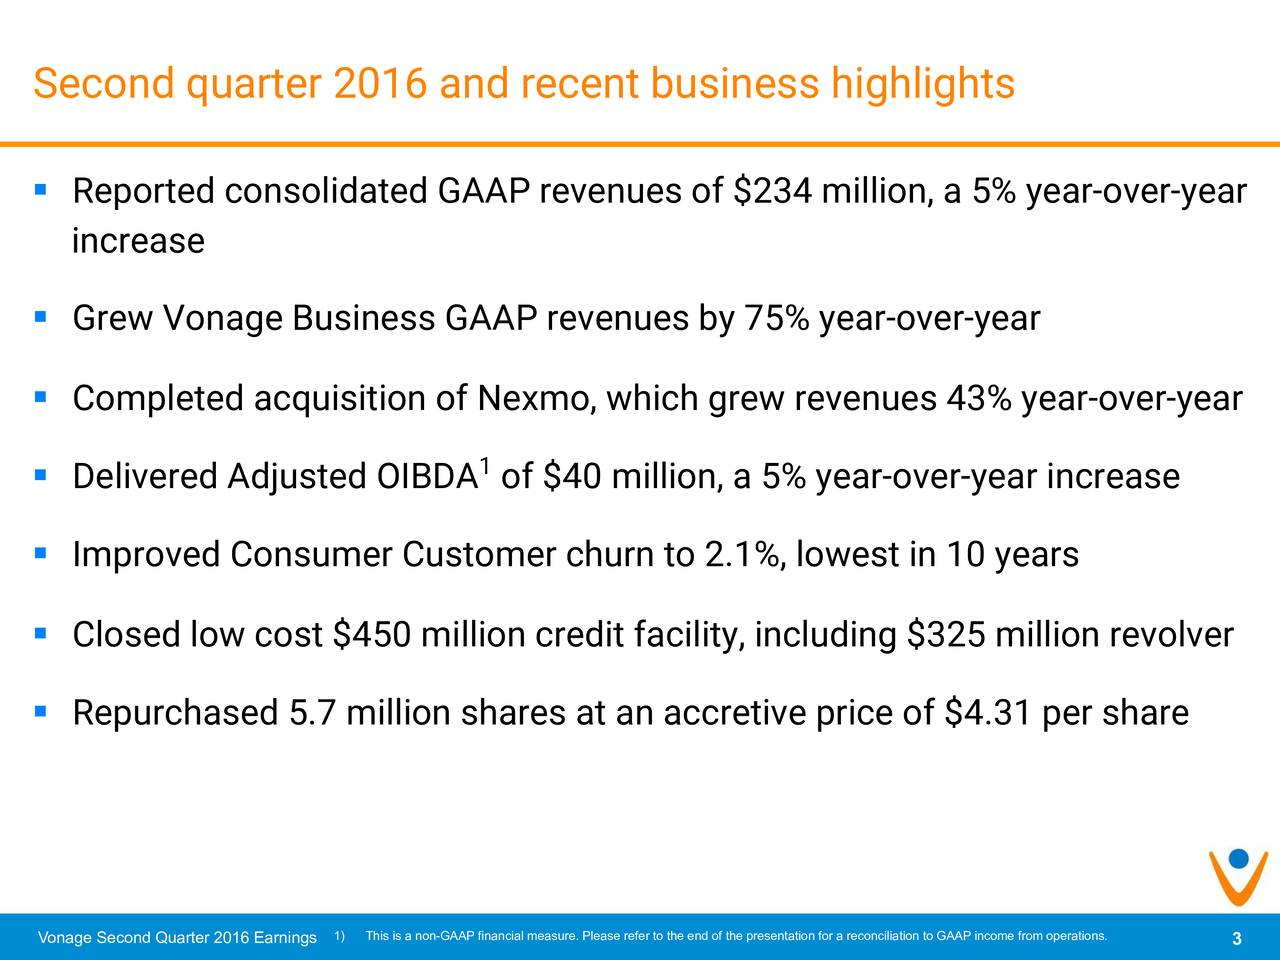 Reported consolidated GAAP revenues of $234 million, a 5% year-over-year increase Grew Vonage Business GAAP revenues by 75% year-over-year Completed acquisition of Nexmo, which grew revenues 43% year-over-year Delivered Adjusted OIBDA of $40 million, a 5% year-over-year increase Improved Consumer Customer churn to 2.1%, lowest in 10 years Closed low cost $450 million credit facility, including $325 million revolver Repurchased 5.7 million shares at an accretive price of $4.31 per share Vonage Second Quarter 2016 Earningsa non-GAAP financial measure. Please refer to the end of the presentation for a reconciliation to GAAP income from operations.